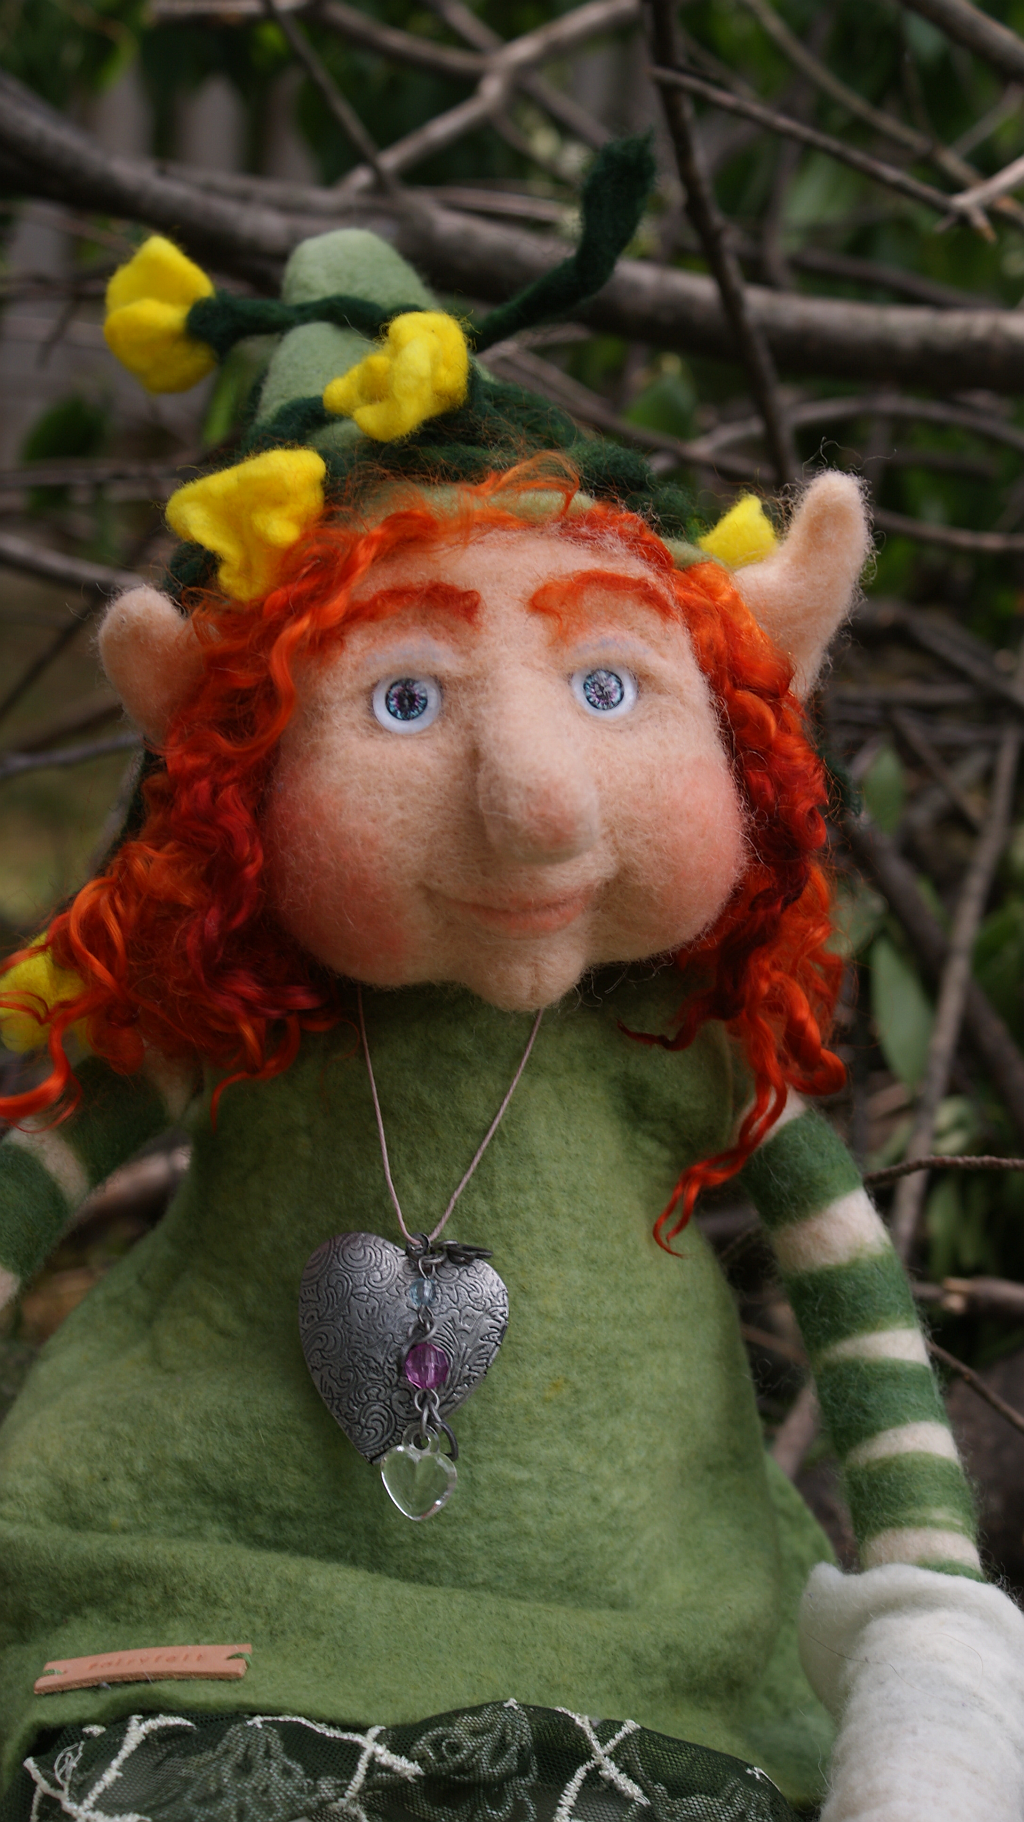 Shana, felted Elf (With images) Christmas ornaments